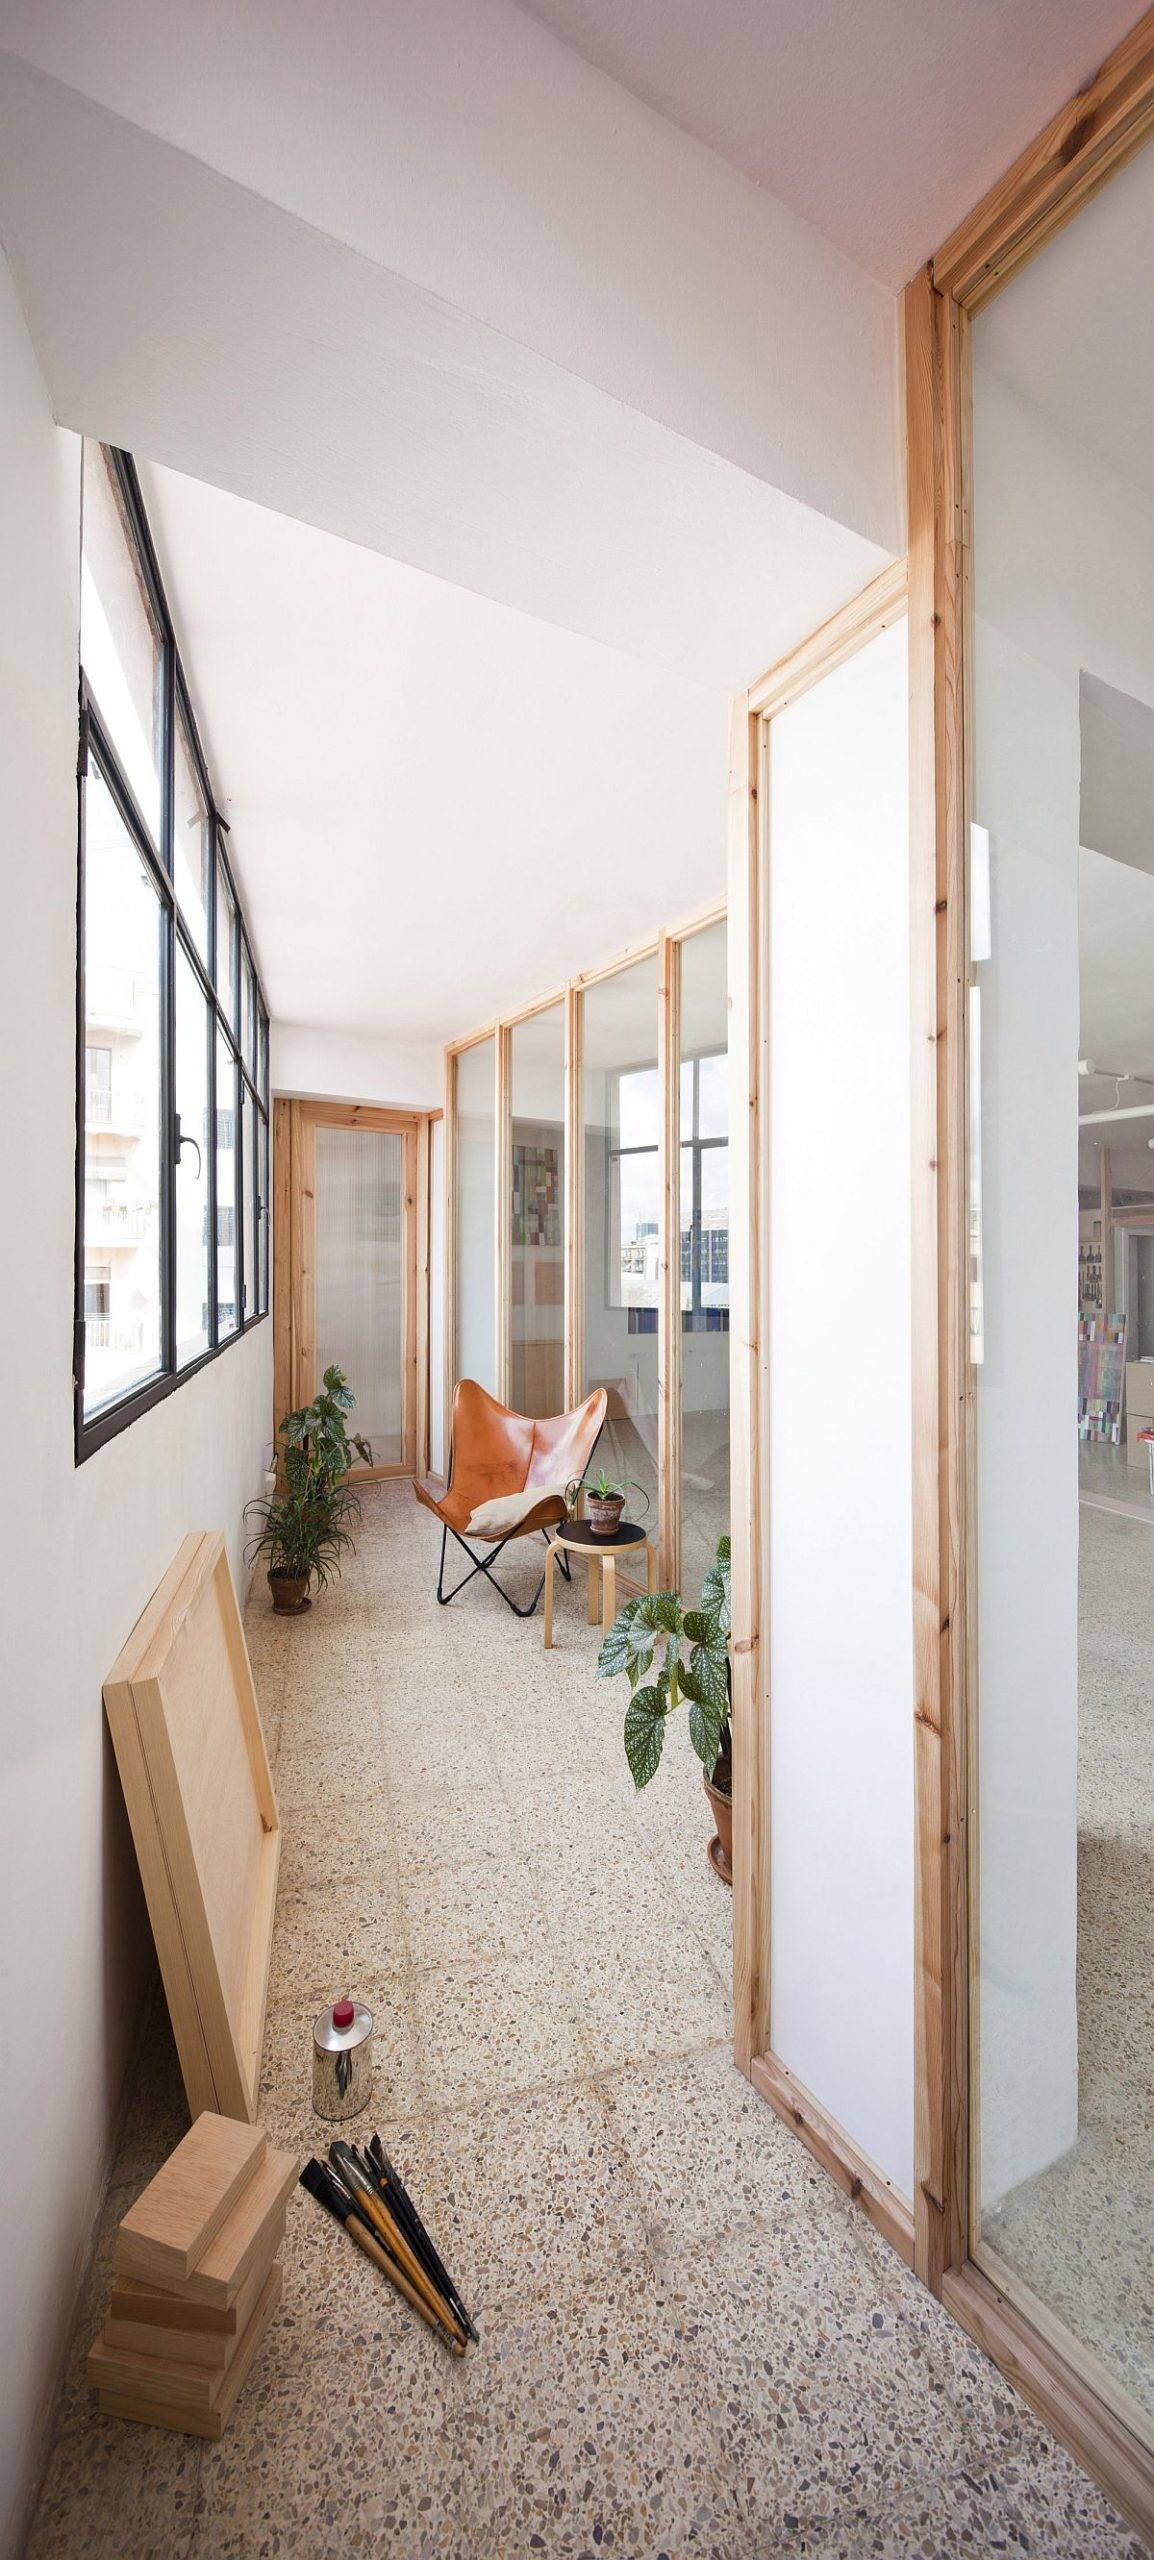 Ingenious-wooden-partitions-alter-th-appeal-of-this-light-filled-Barcelona-office-79389-scaled